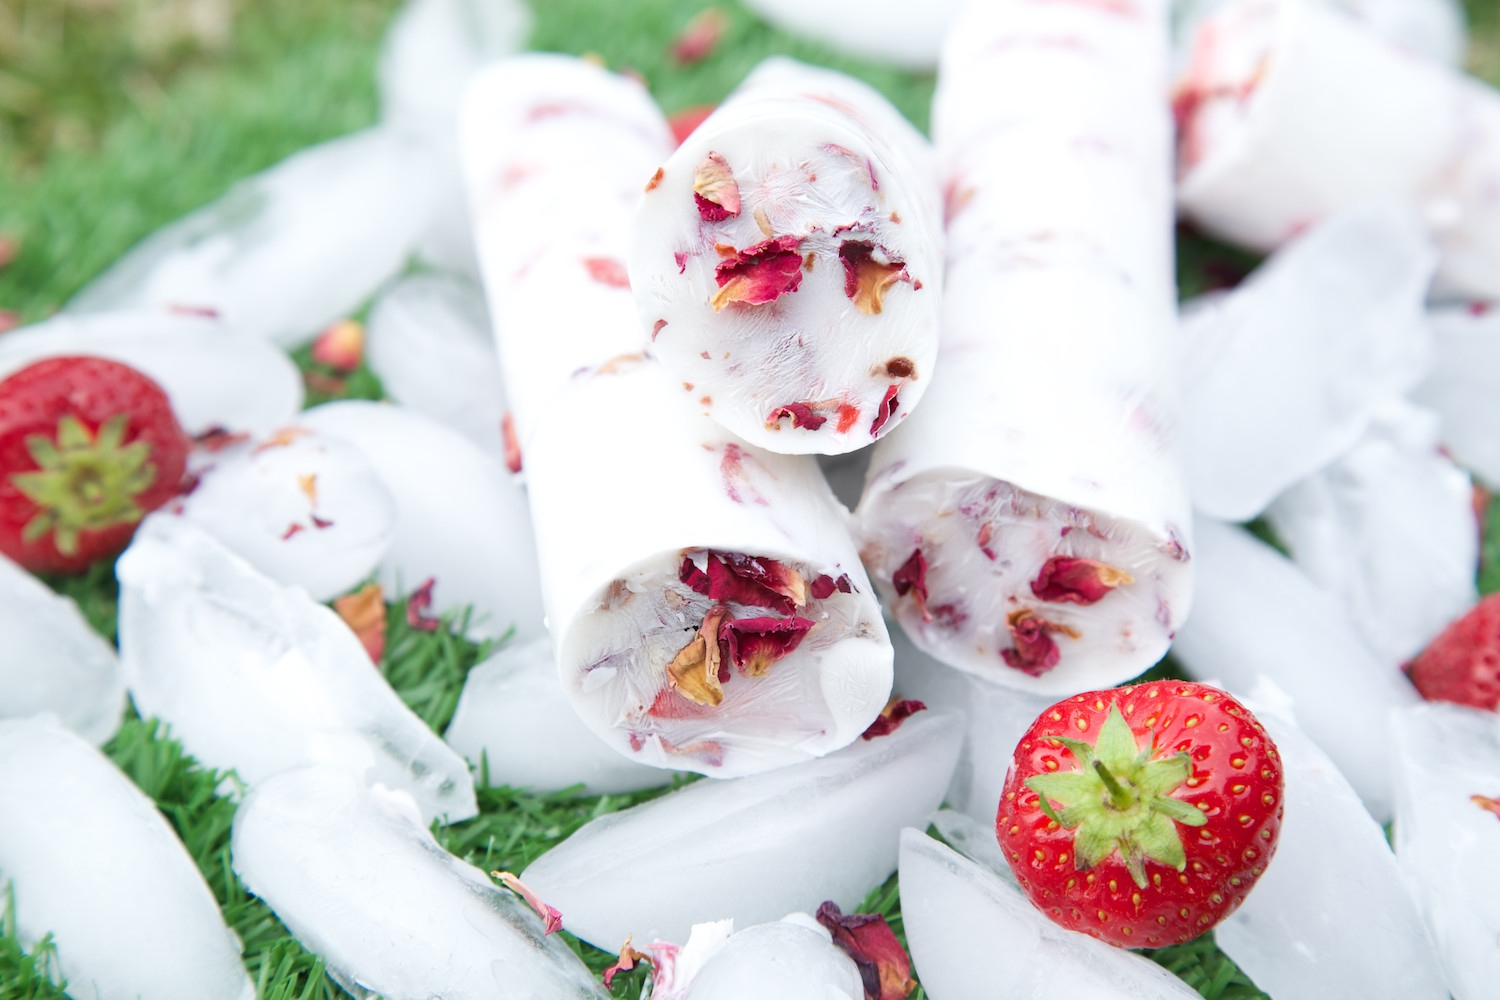 Strawberries and cream ice lollies